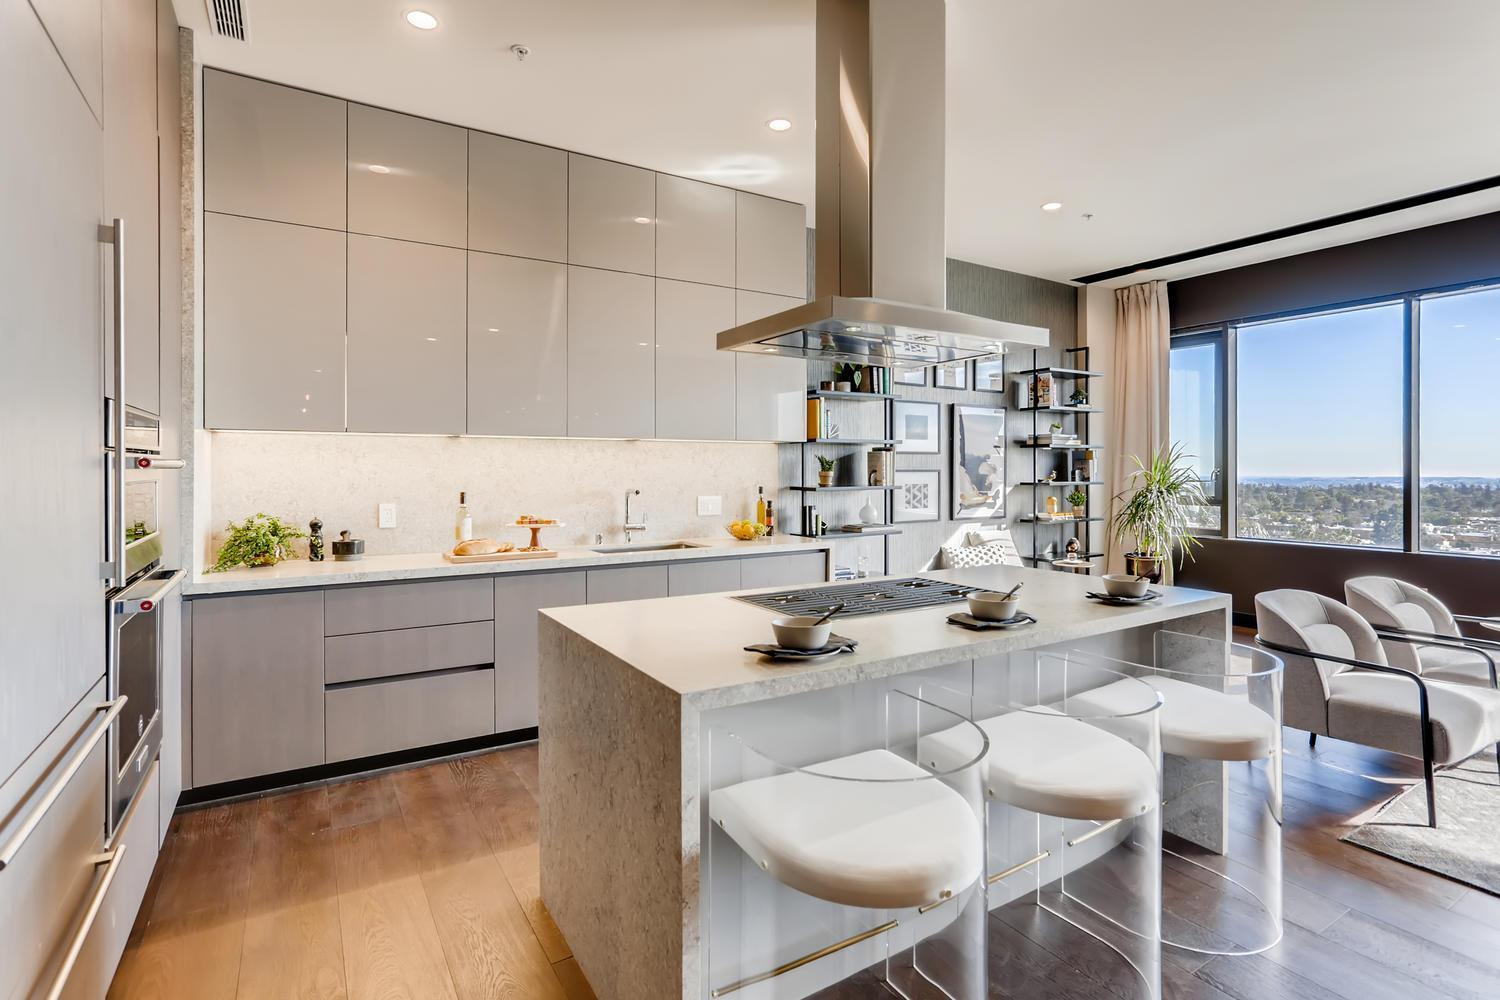 Kitchen featured in the Penthouse 6 By Adept Urban  in Los Angeles, CA